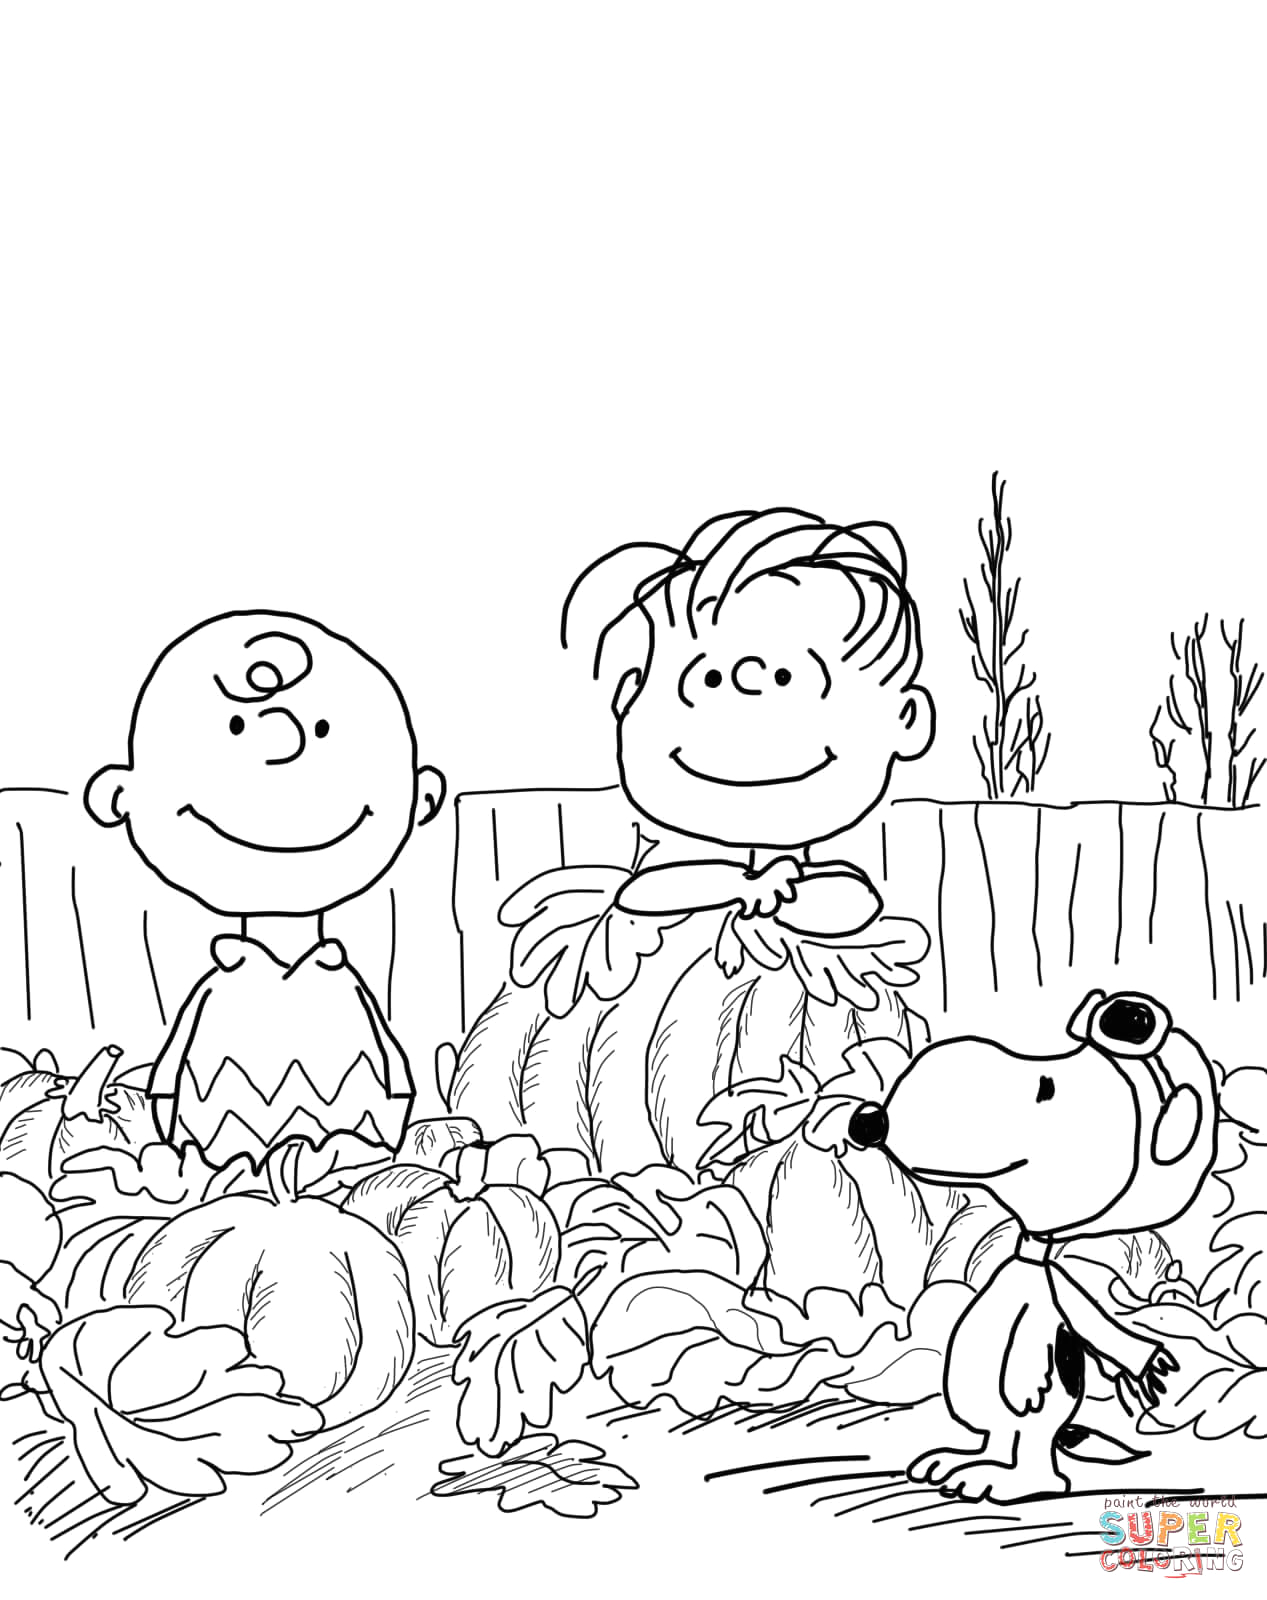 The Great Pumpkin Charlie Brown Coloring Pages Great Pumpkin Charlie Brown Coloring Page